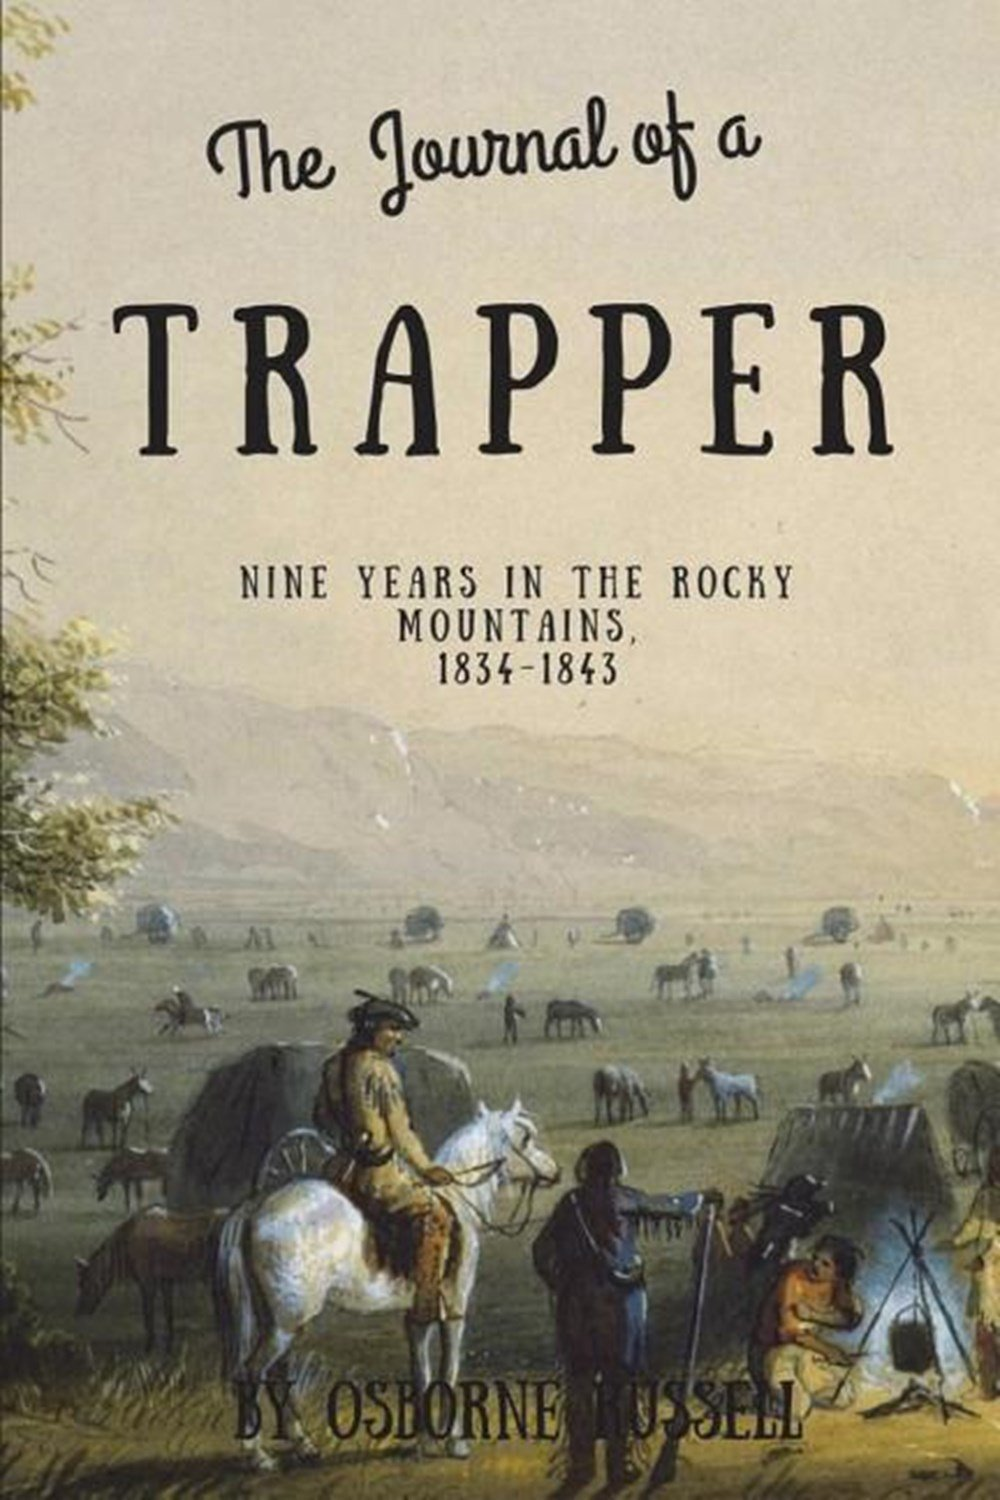 Journal of a Trapper (Illustrated) Nine Years in the Rocky Mountains, 1834-1843